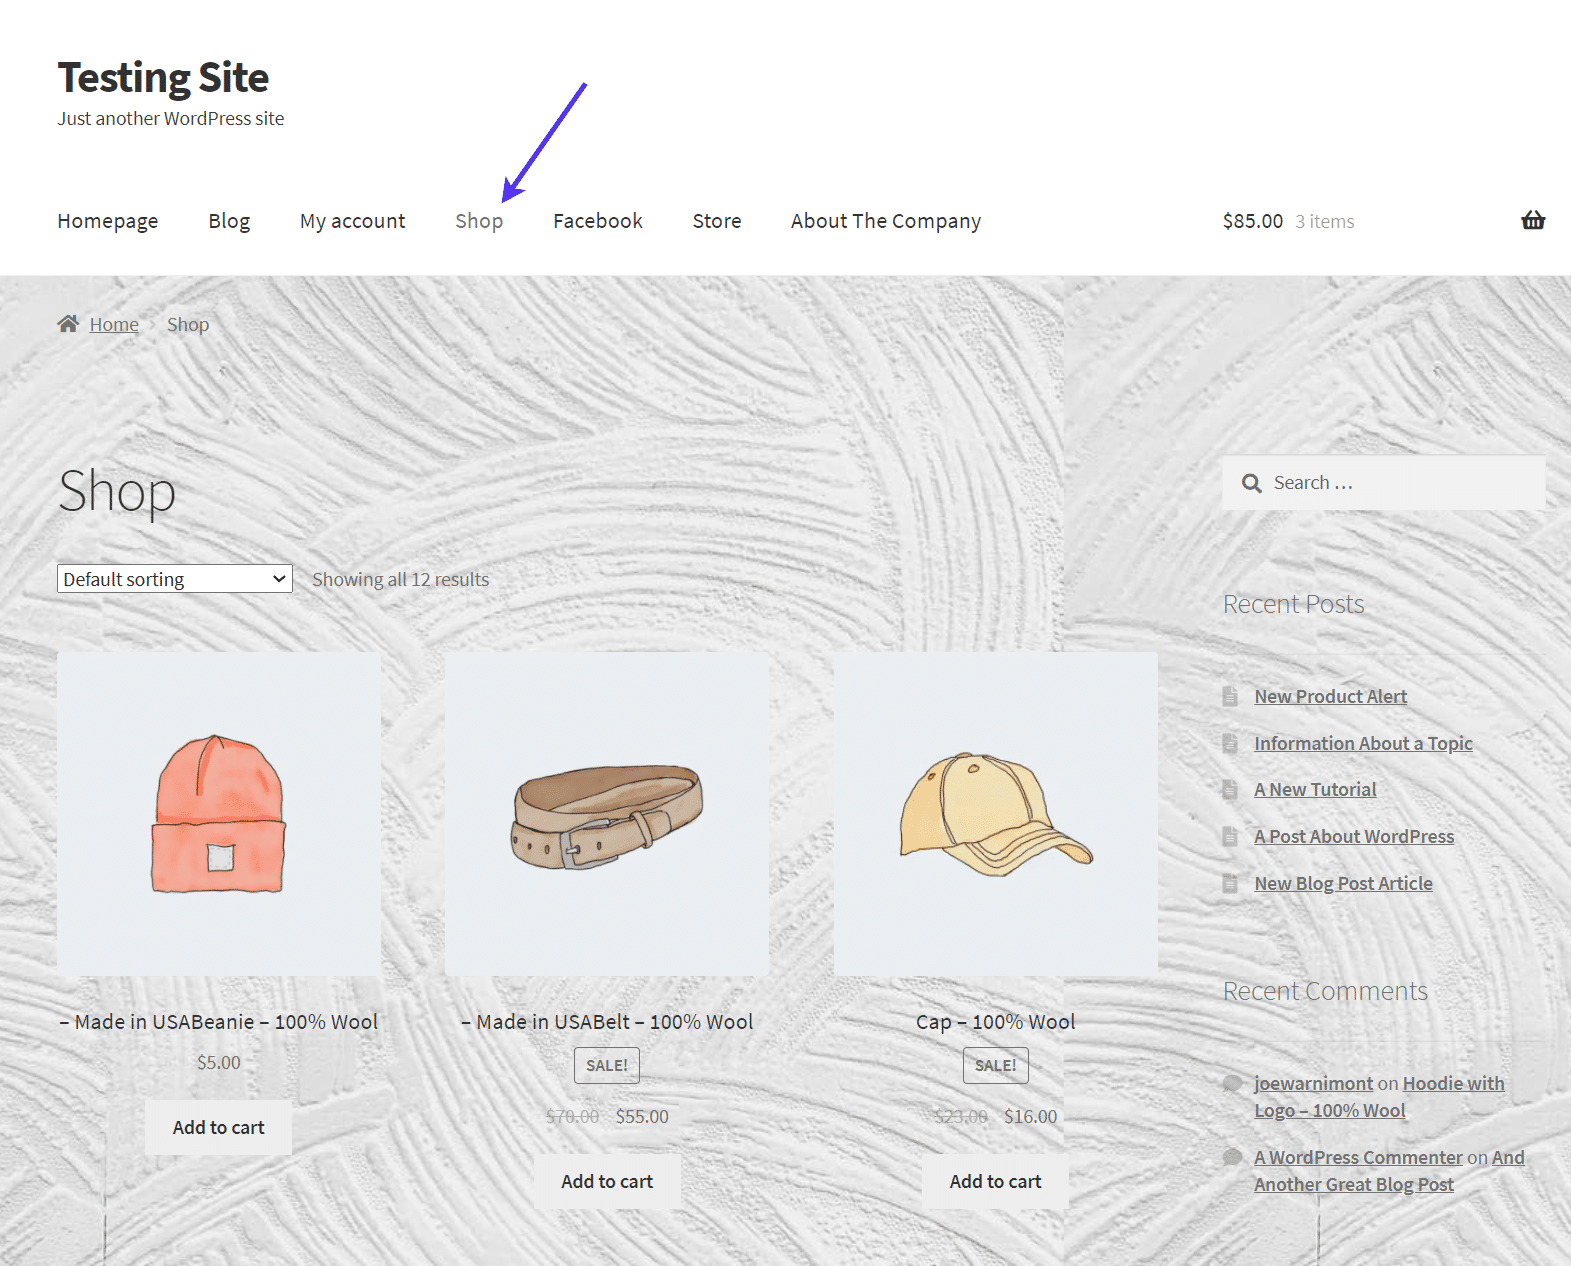 The WordPress background image in another page